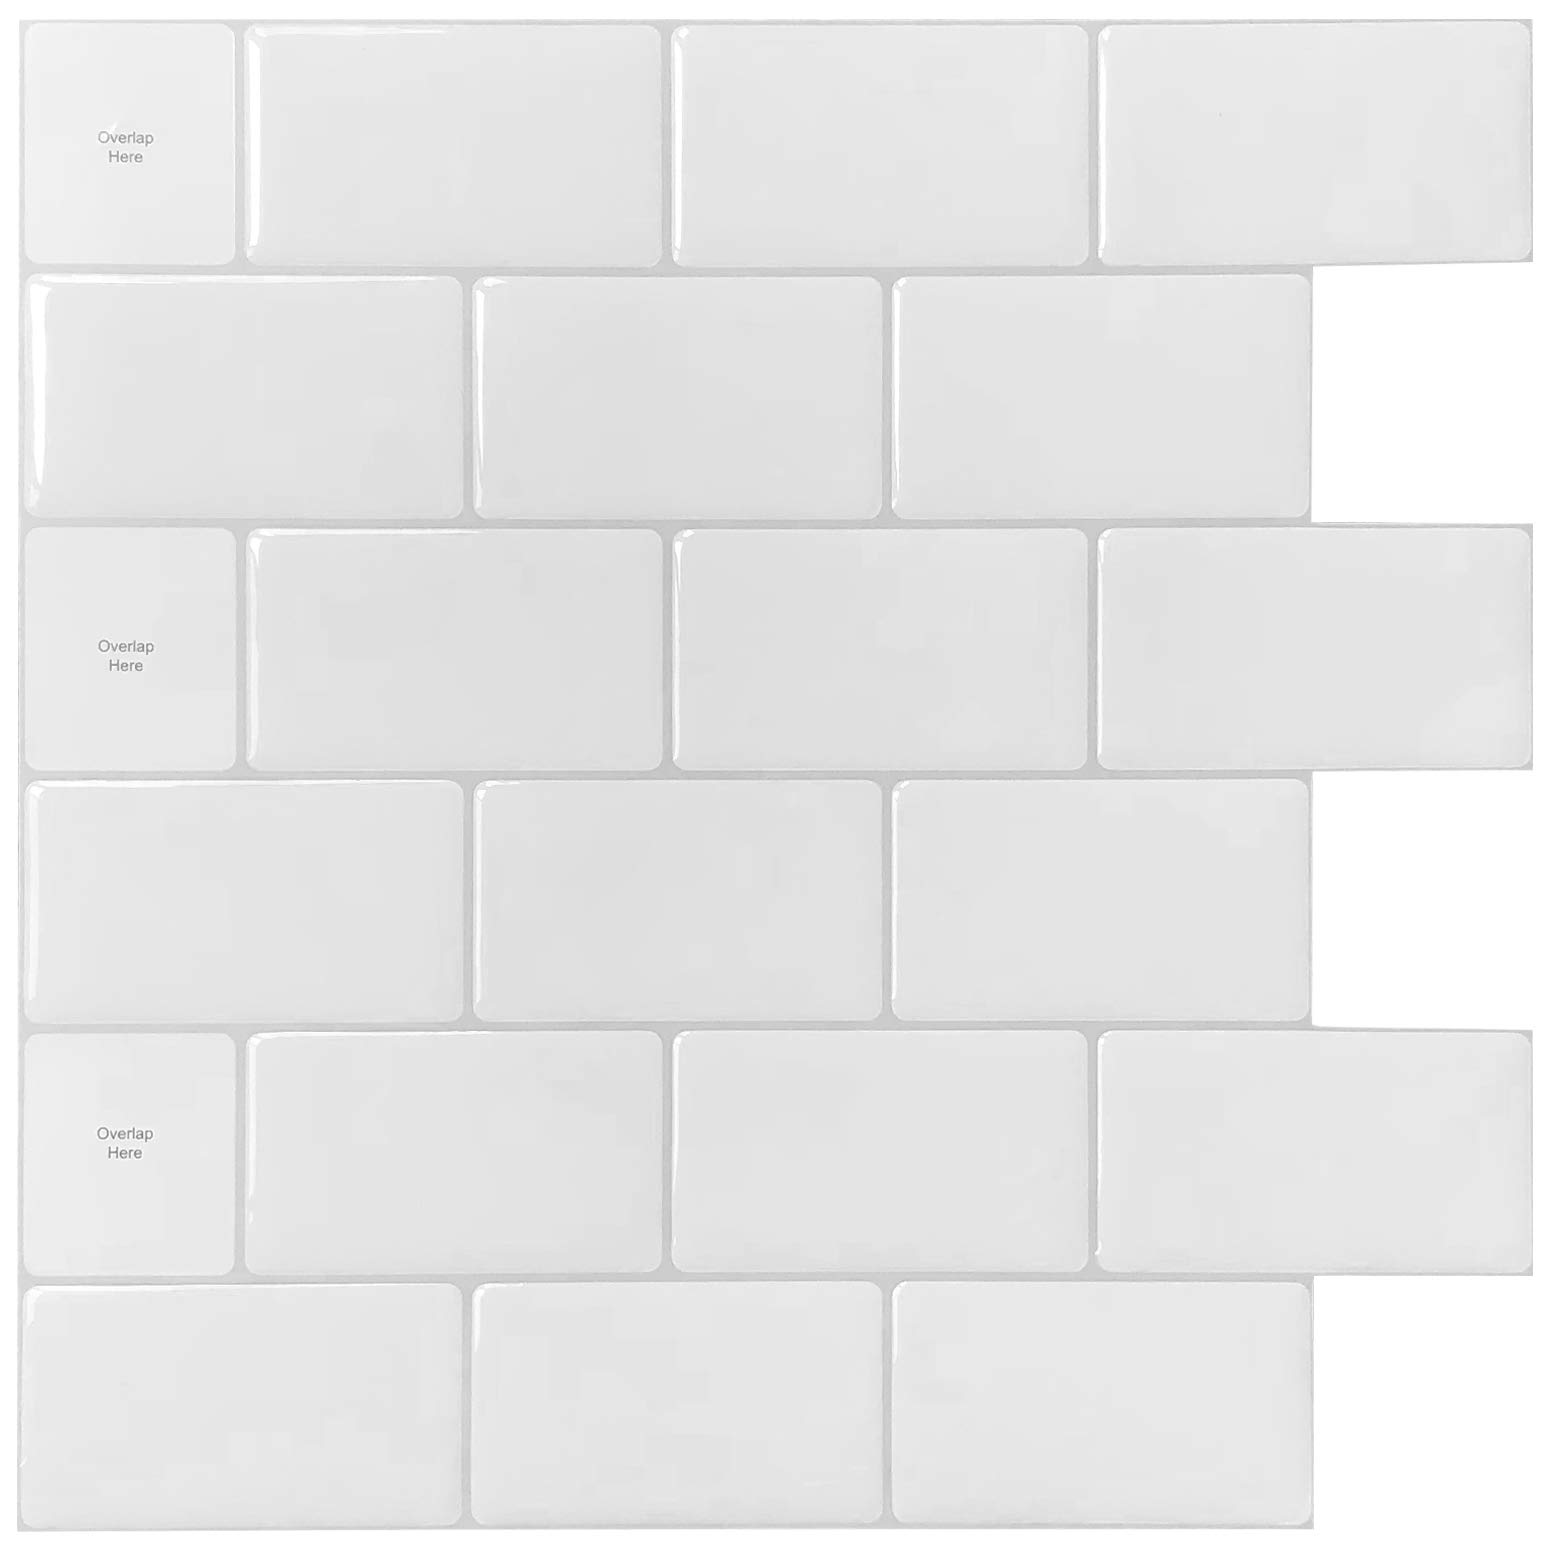 LONGKING 12''x12'' Peel and Stick Tile for Kitchen Backsplash, White Subway Tile, (10 Sheets) by LONGKING